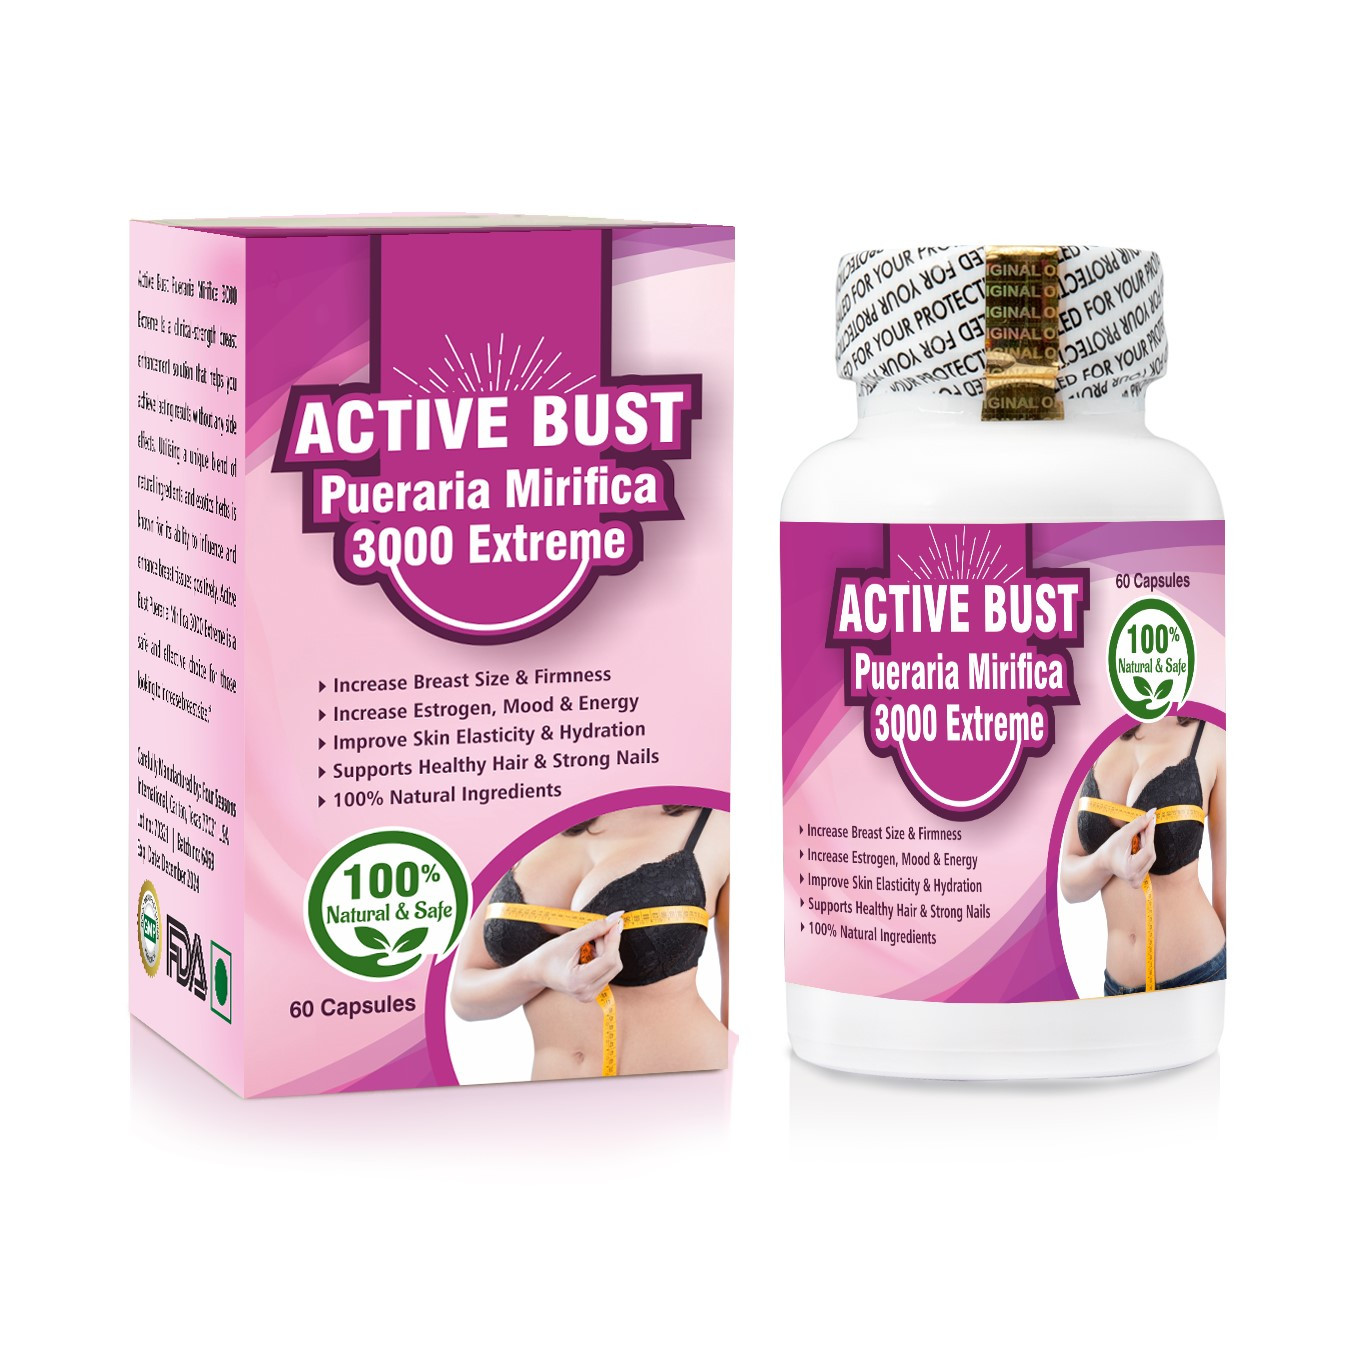 Active Bust Pueraria Mirifica 3000 Extreme